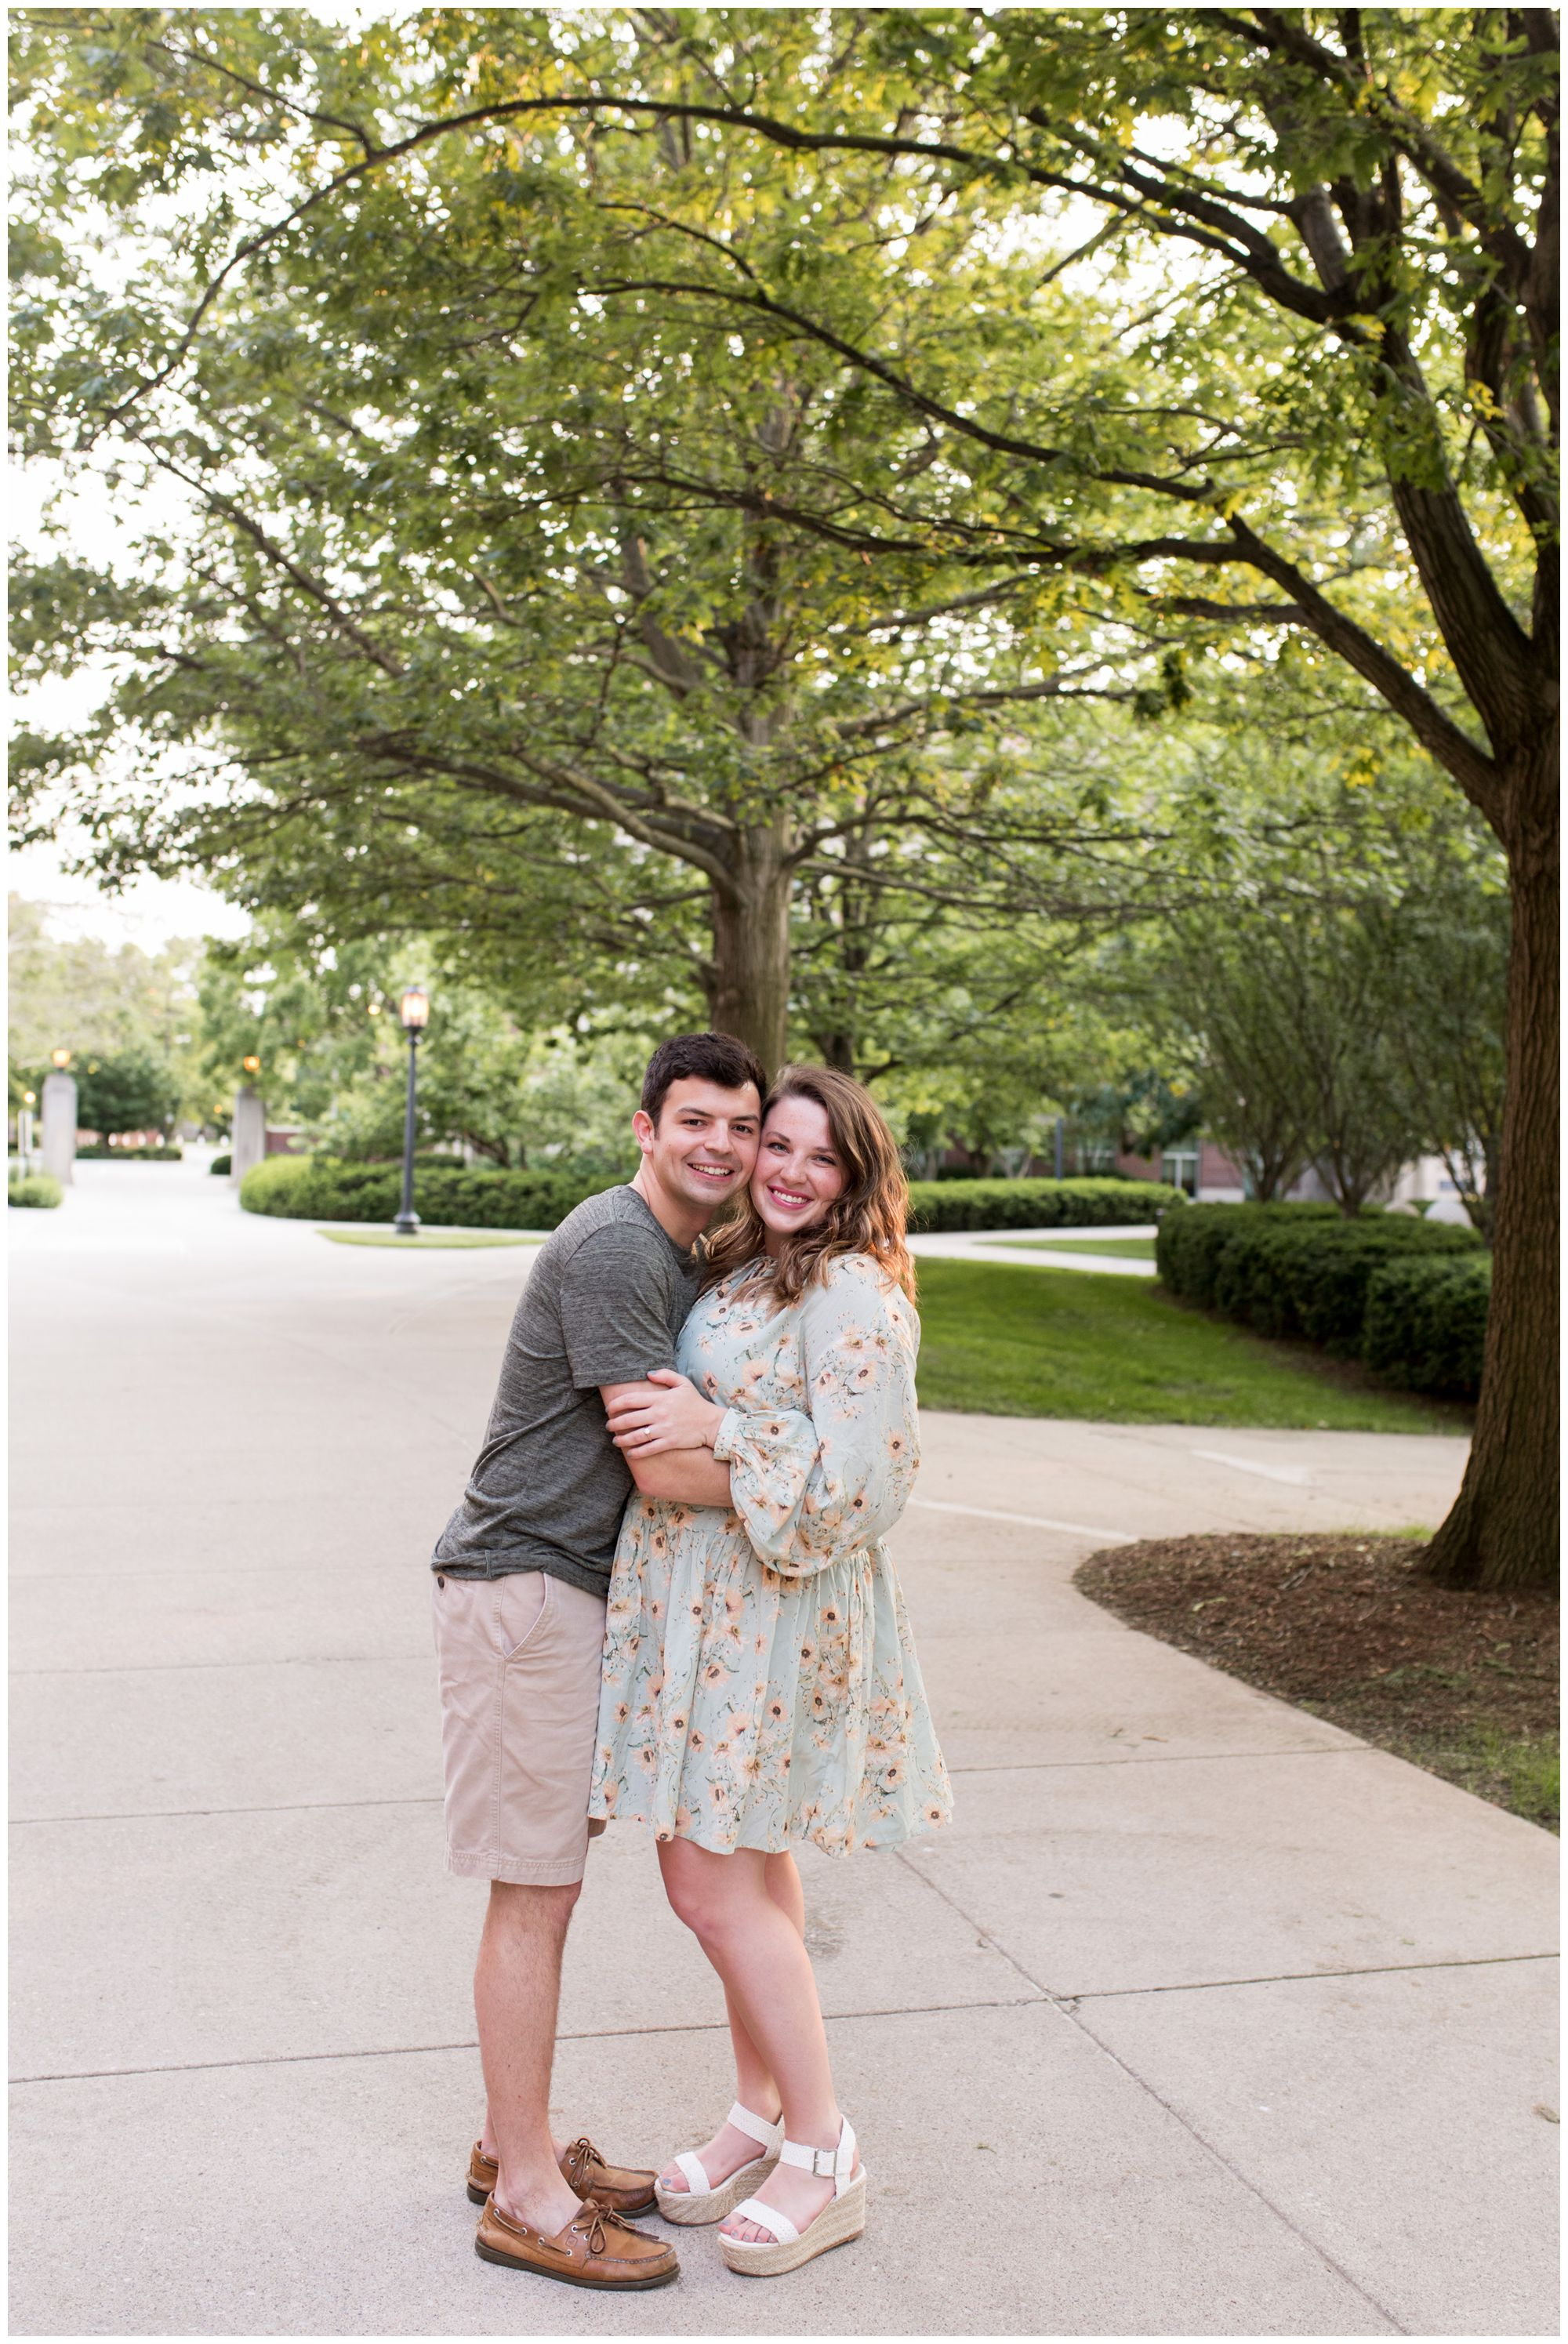 Purdue University engagement session photographer in West Lafayette, Indiana